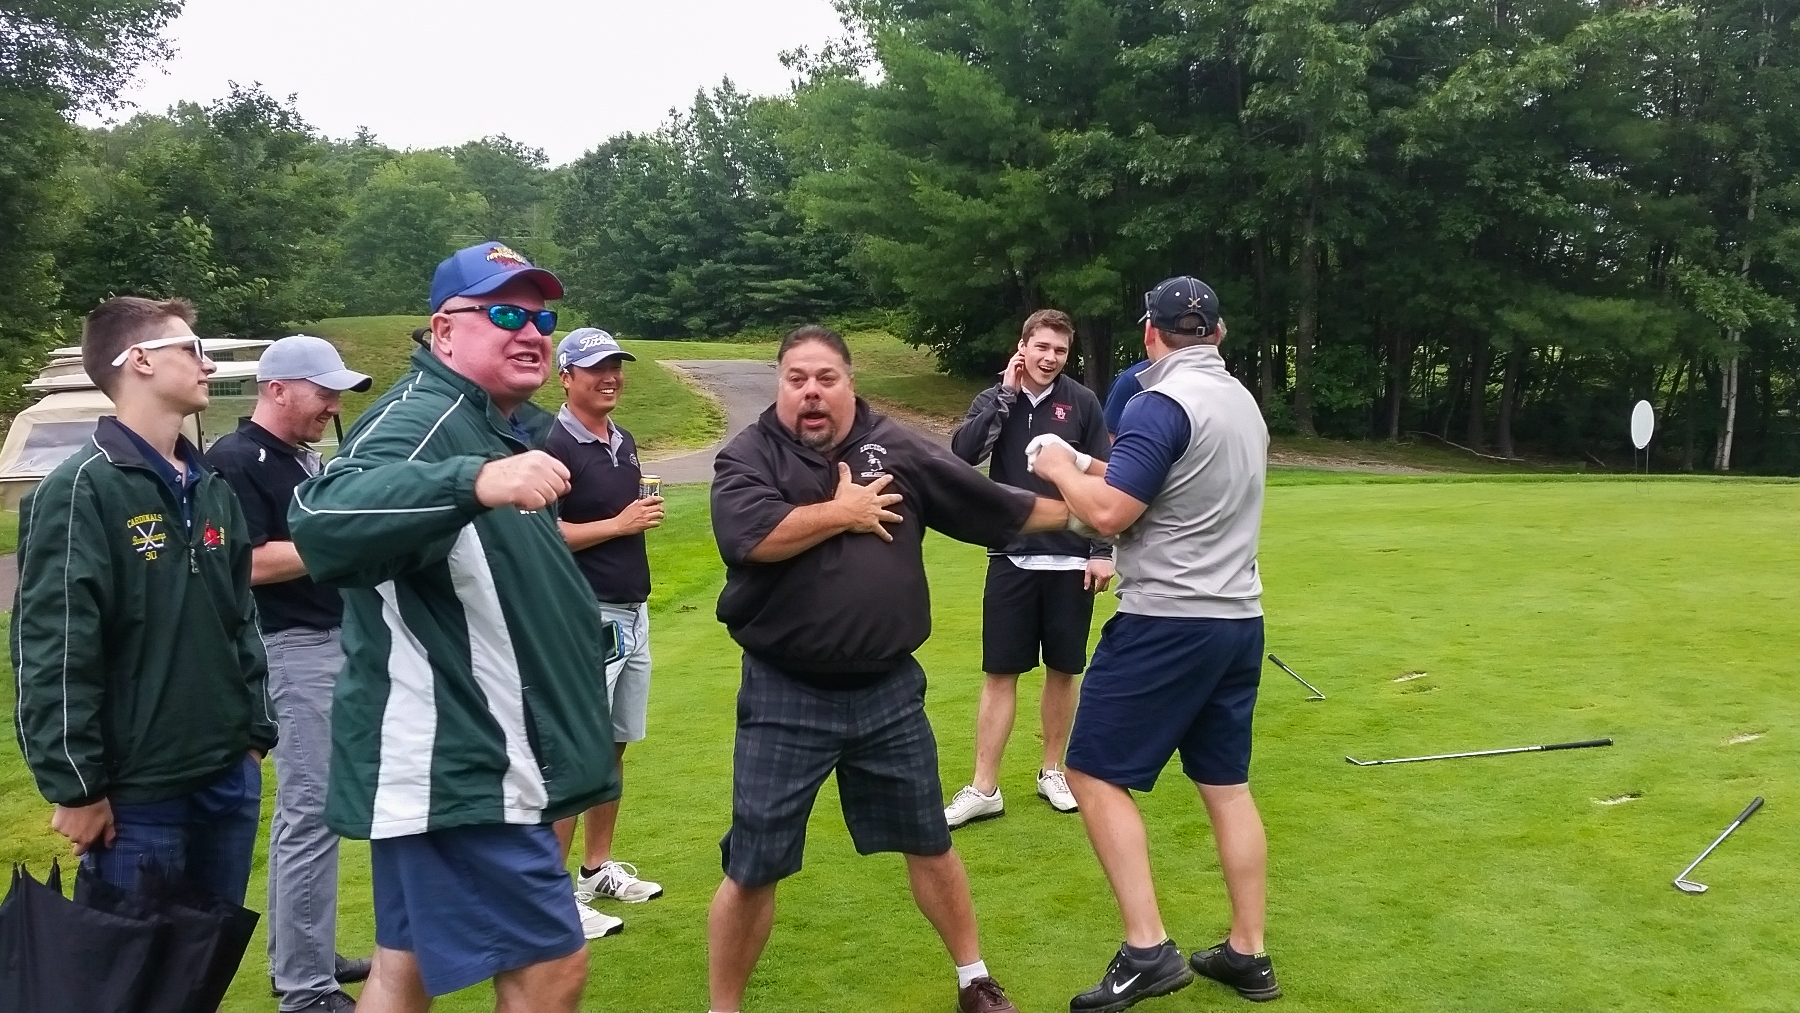 12th Annual Golf Classic Another Big Hit